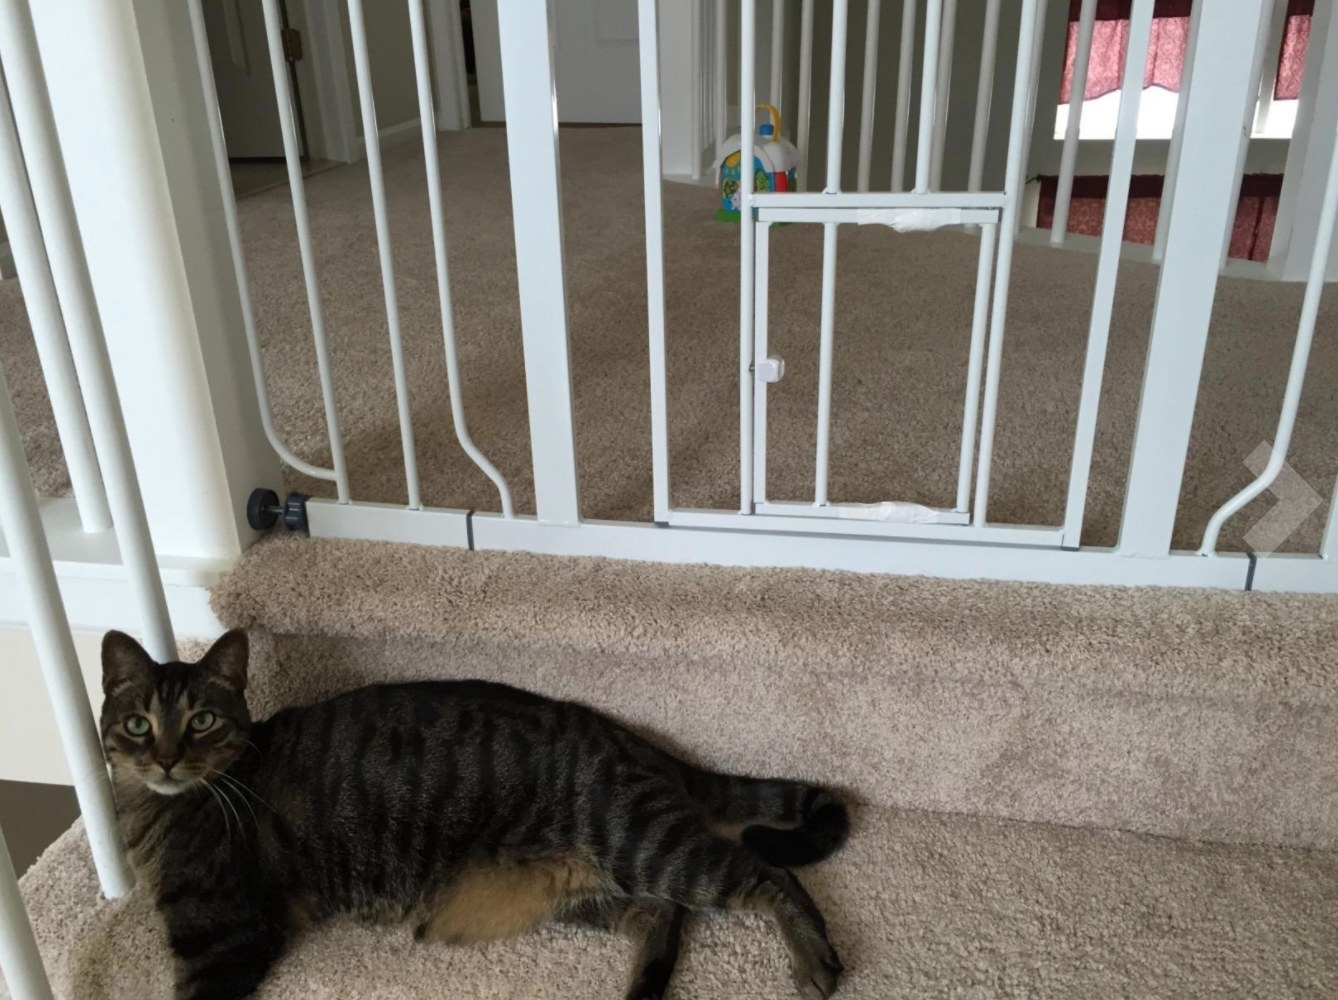 A reviewer's photo of their cat on carpeted stairs outside the small pet gate